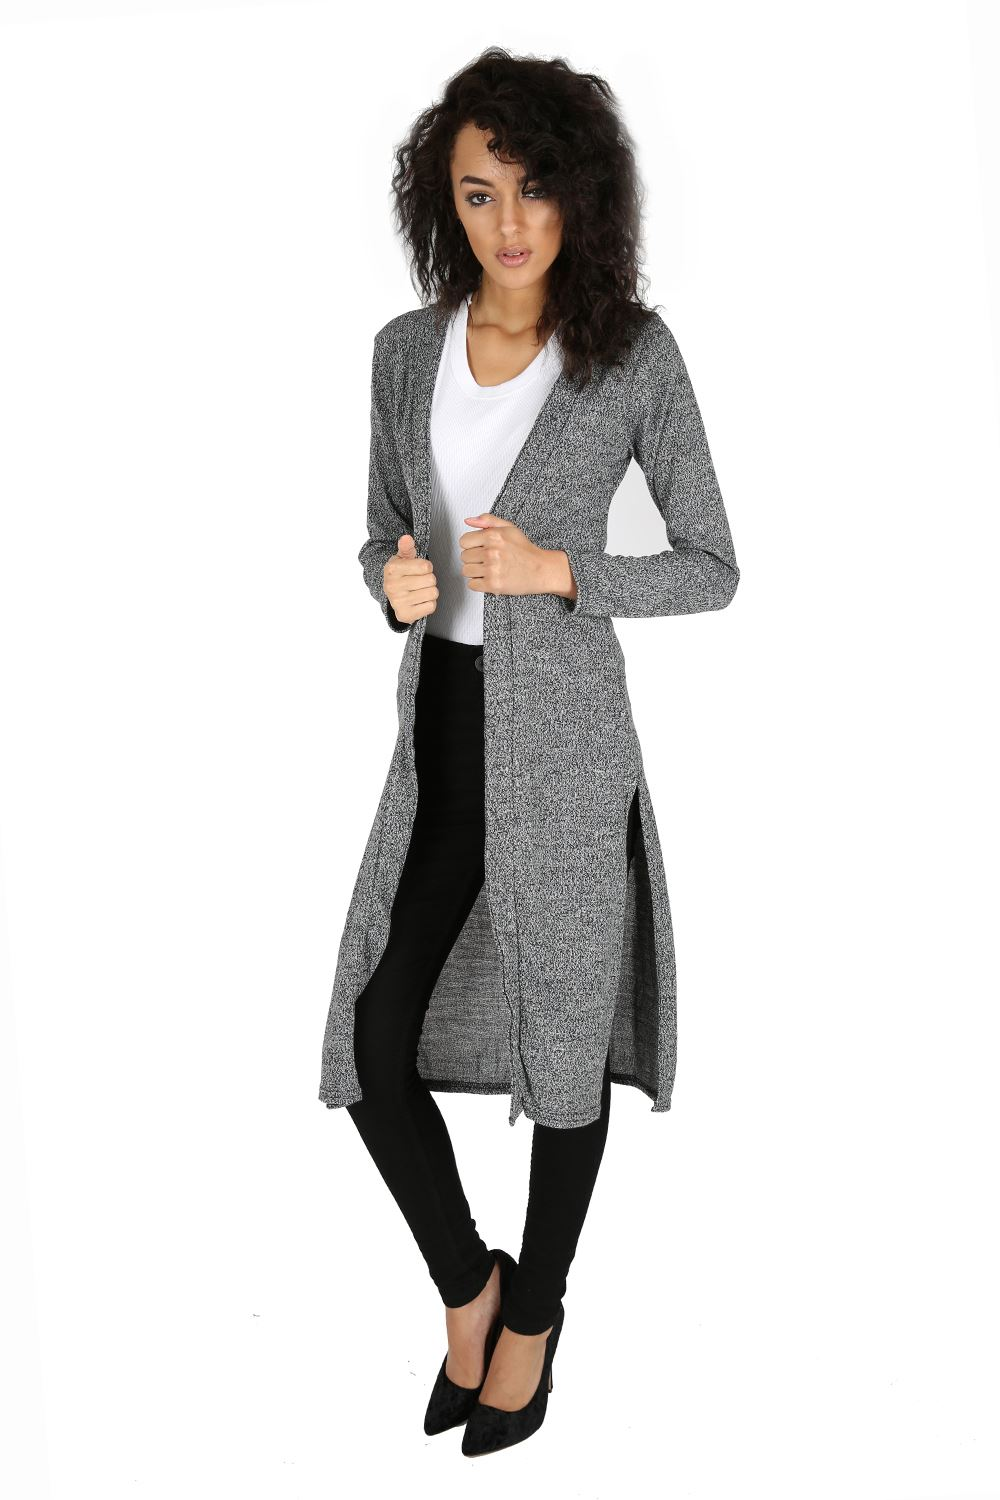 LADIES LONG SLEEVE BOYFRIEND CARDIGAN WITH 2 POCKETS SIZE 6-18